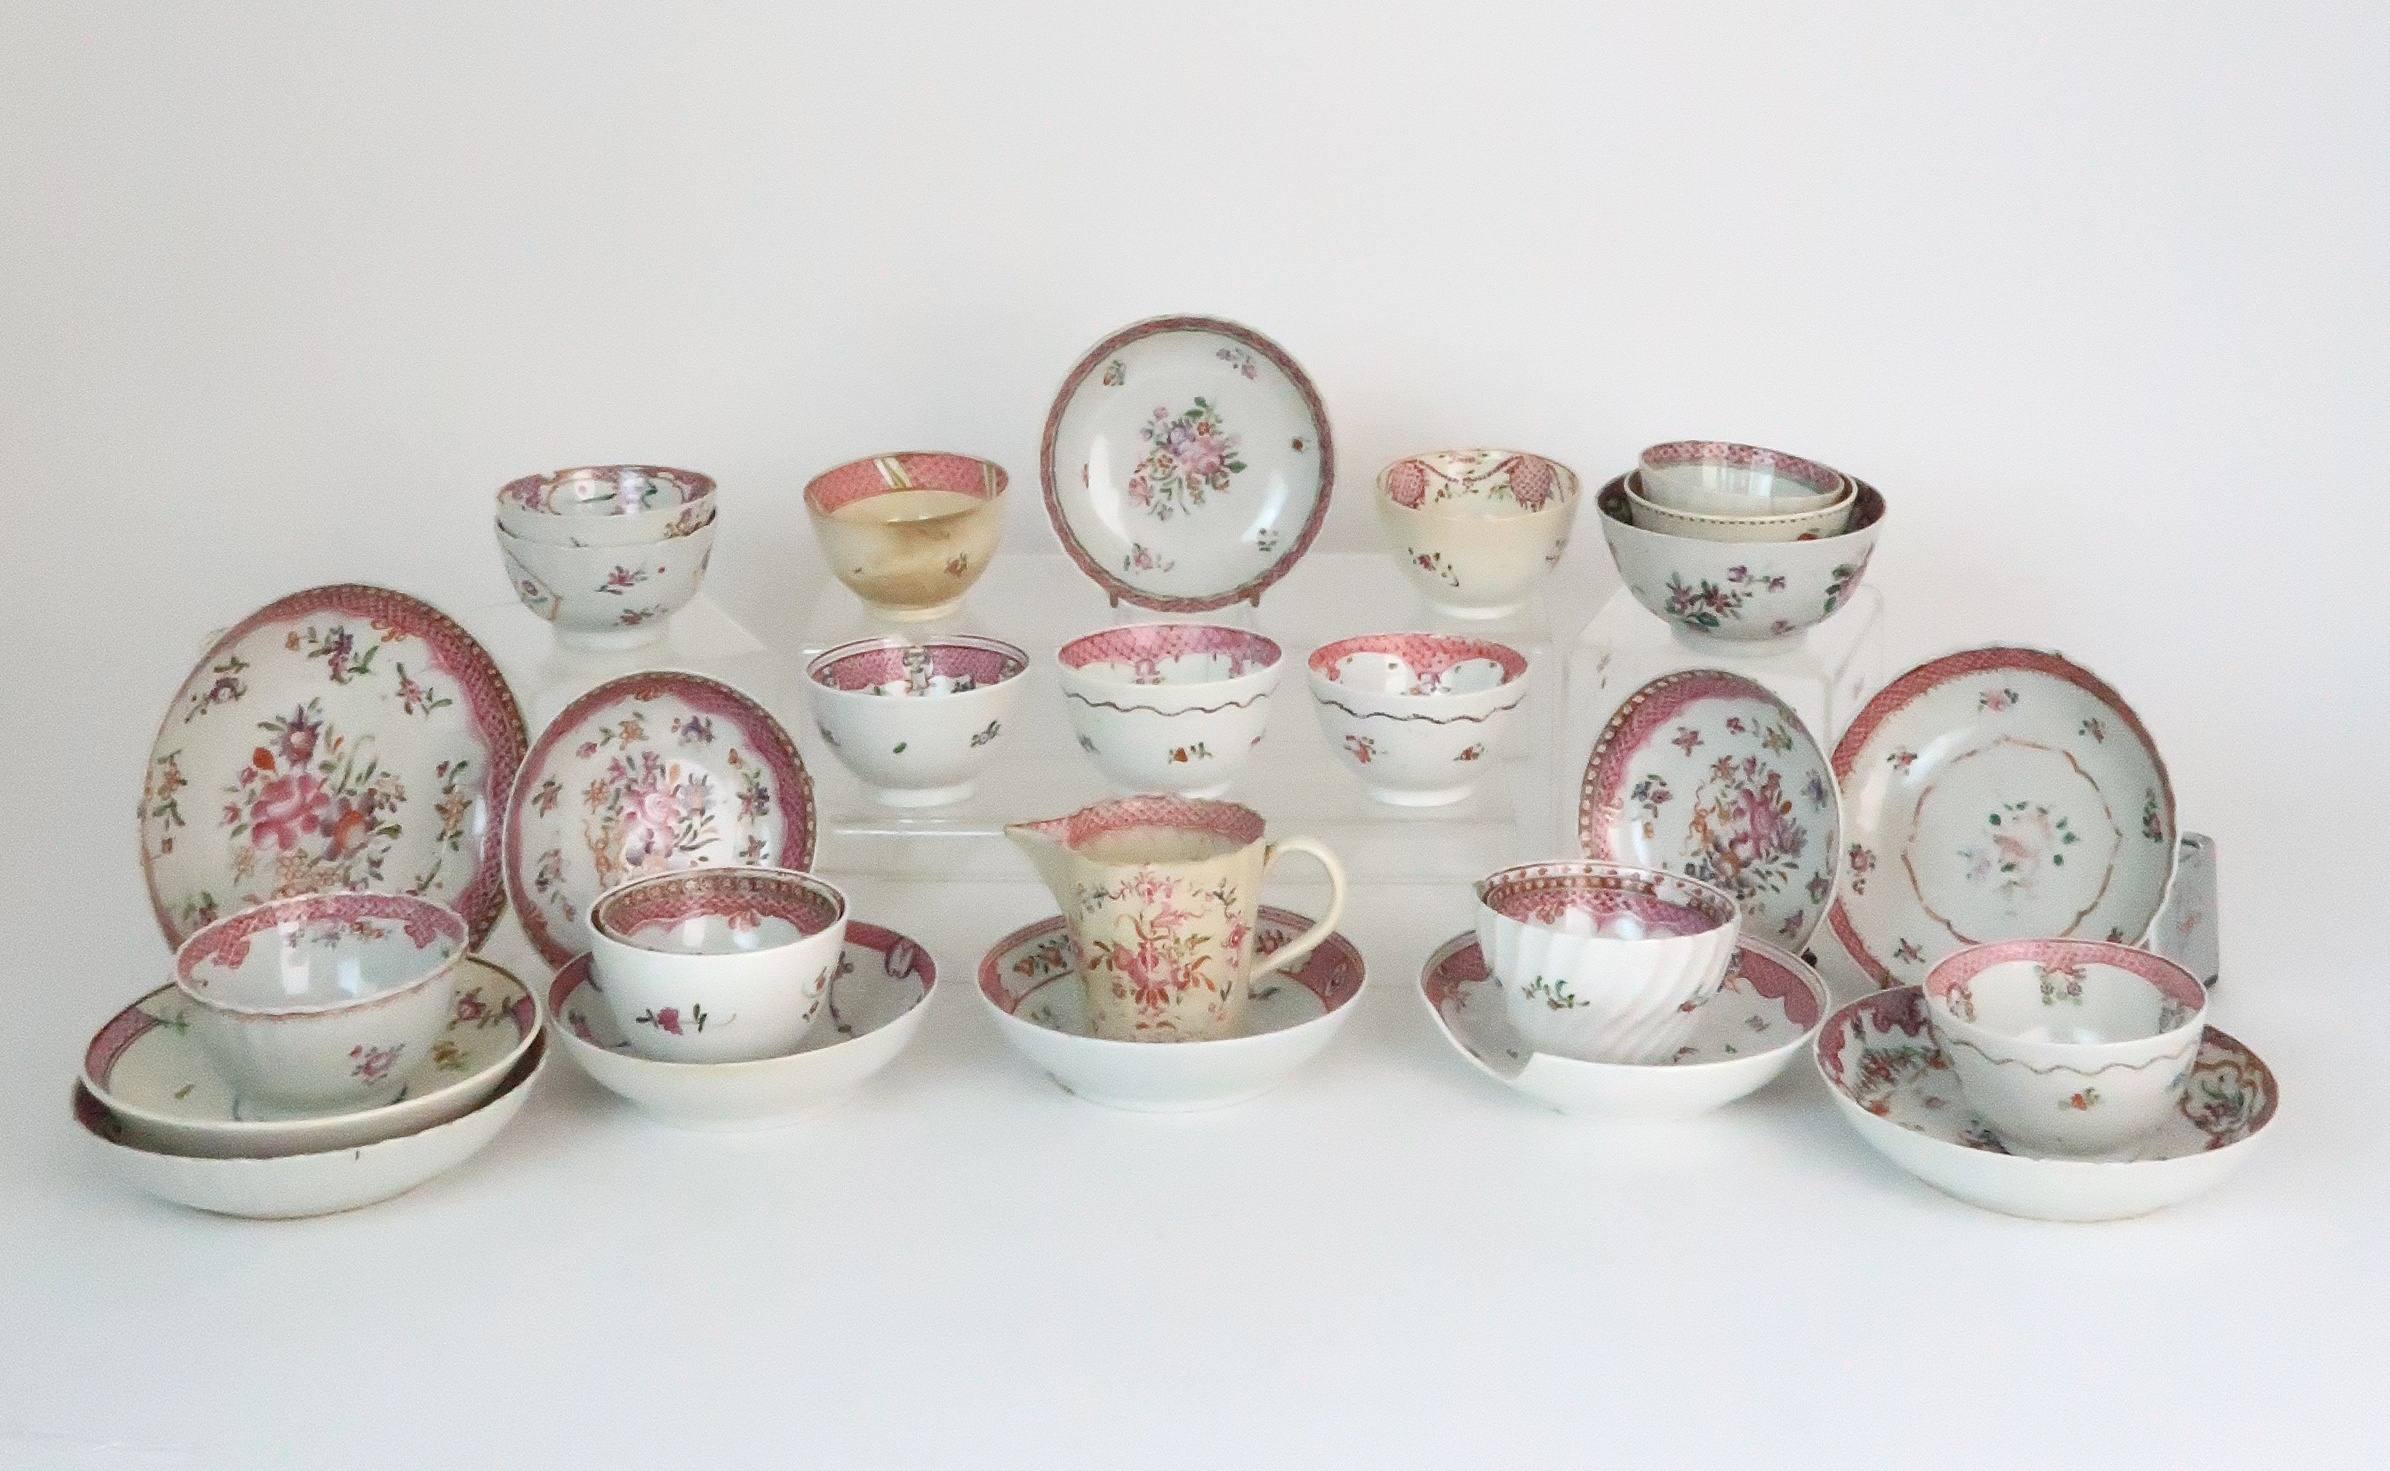 A COLLECTION OF TEA BOWLS AND SAUCERS each with pink scale and floral decoration including New Hall;